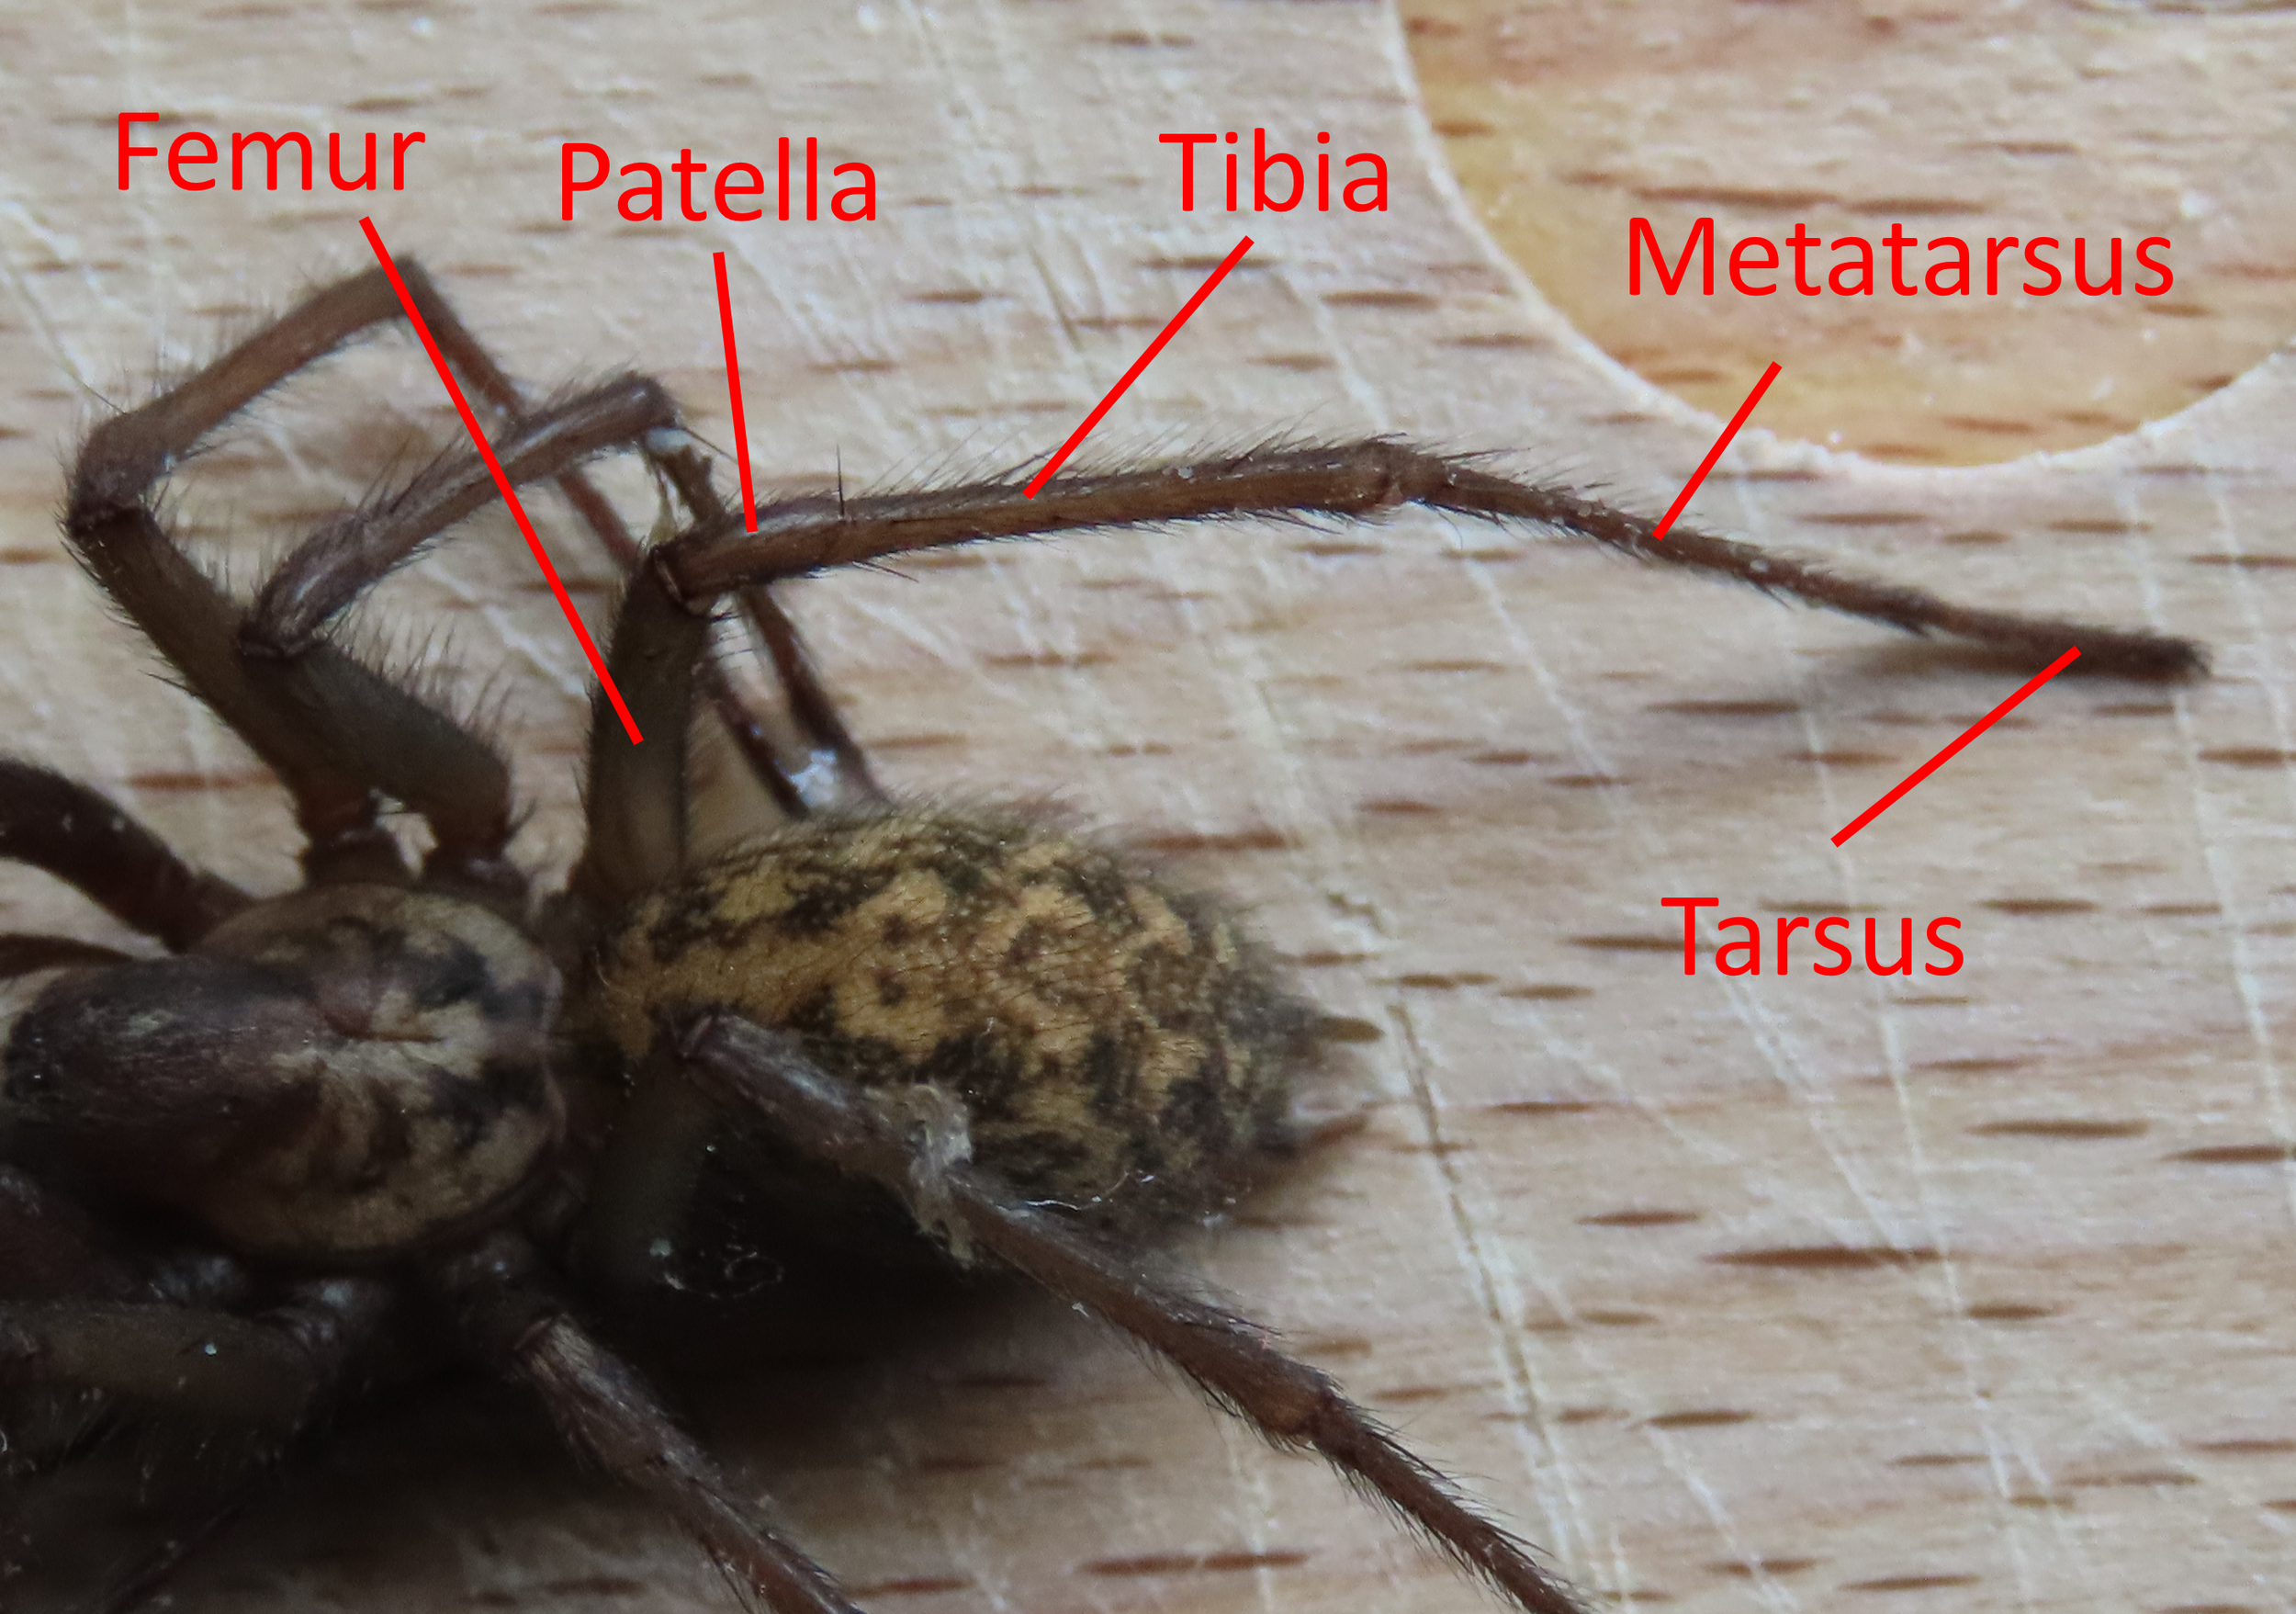 Figure 6 - Spider Anatomy: Close-up of legs of a  Tegenaria gigantea  spider from a dorsal view | Credit: Talita Bateman